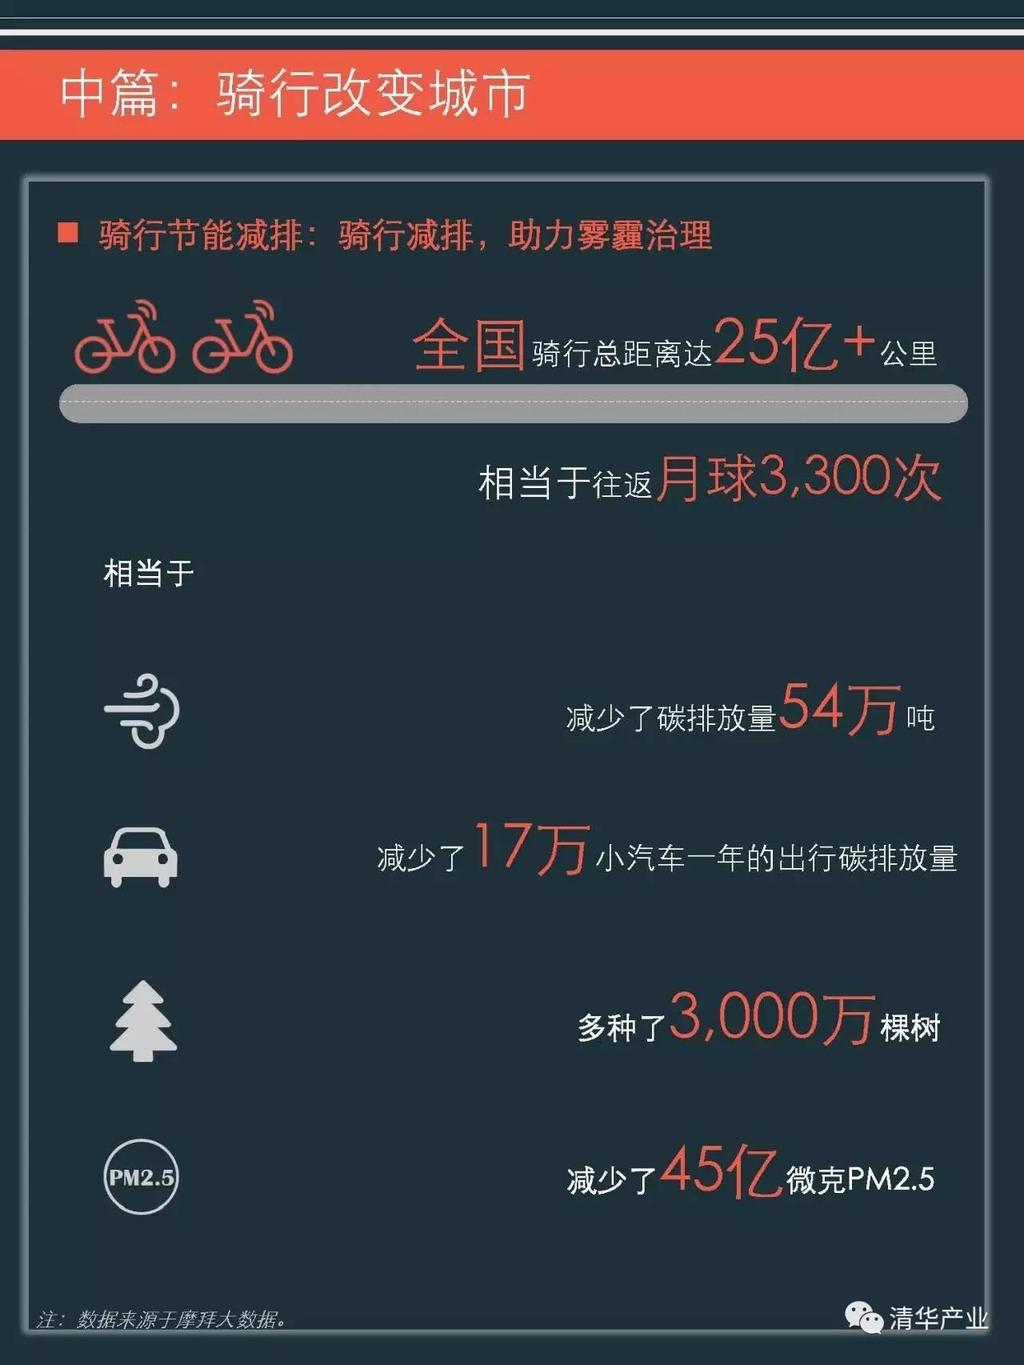 12 Figure 2: cycling reduces carbon emissions and helps with haze treatment (Tsinghua Industry 2017.